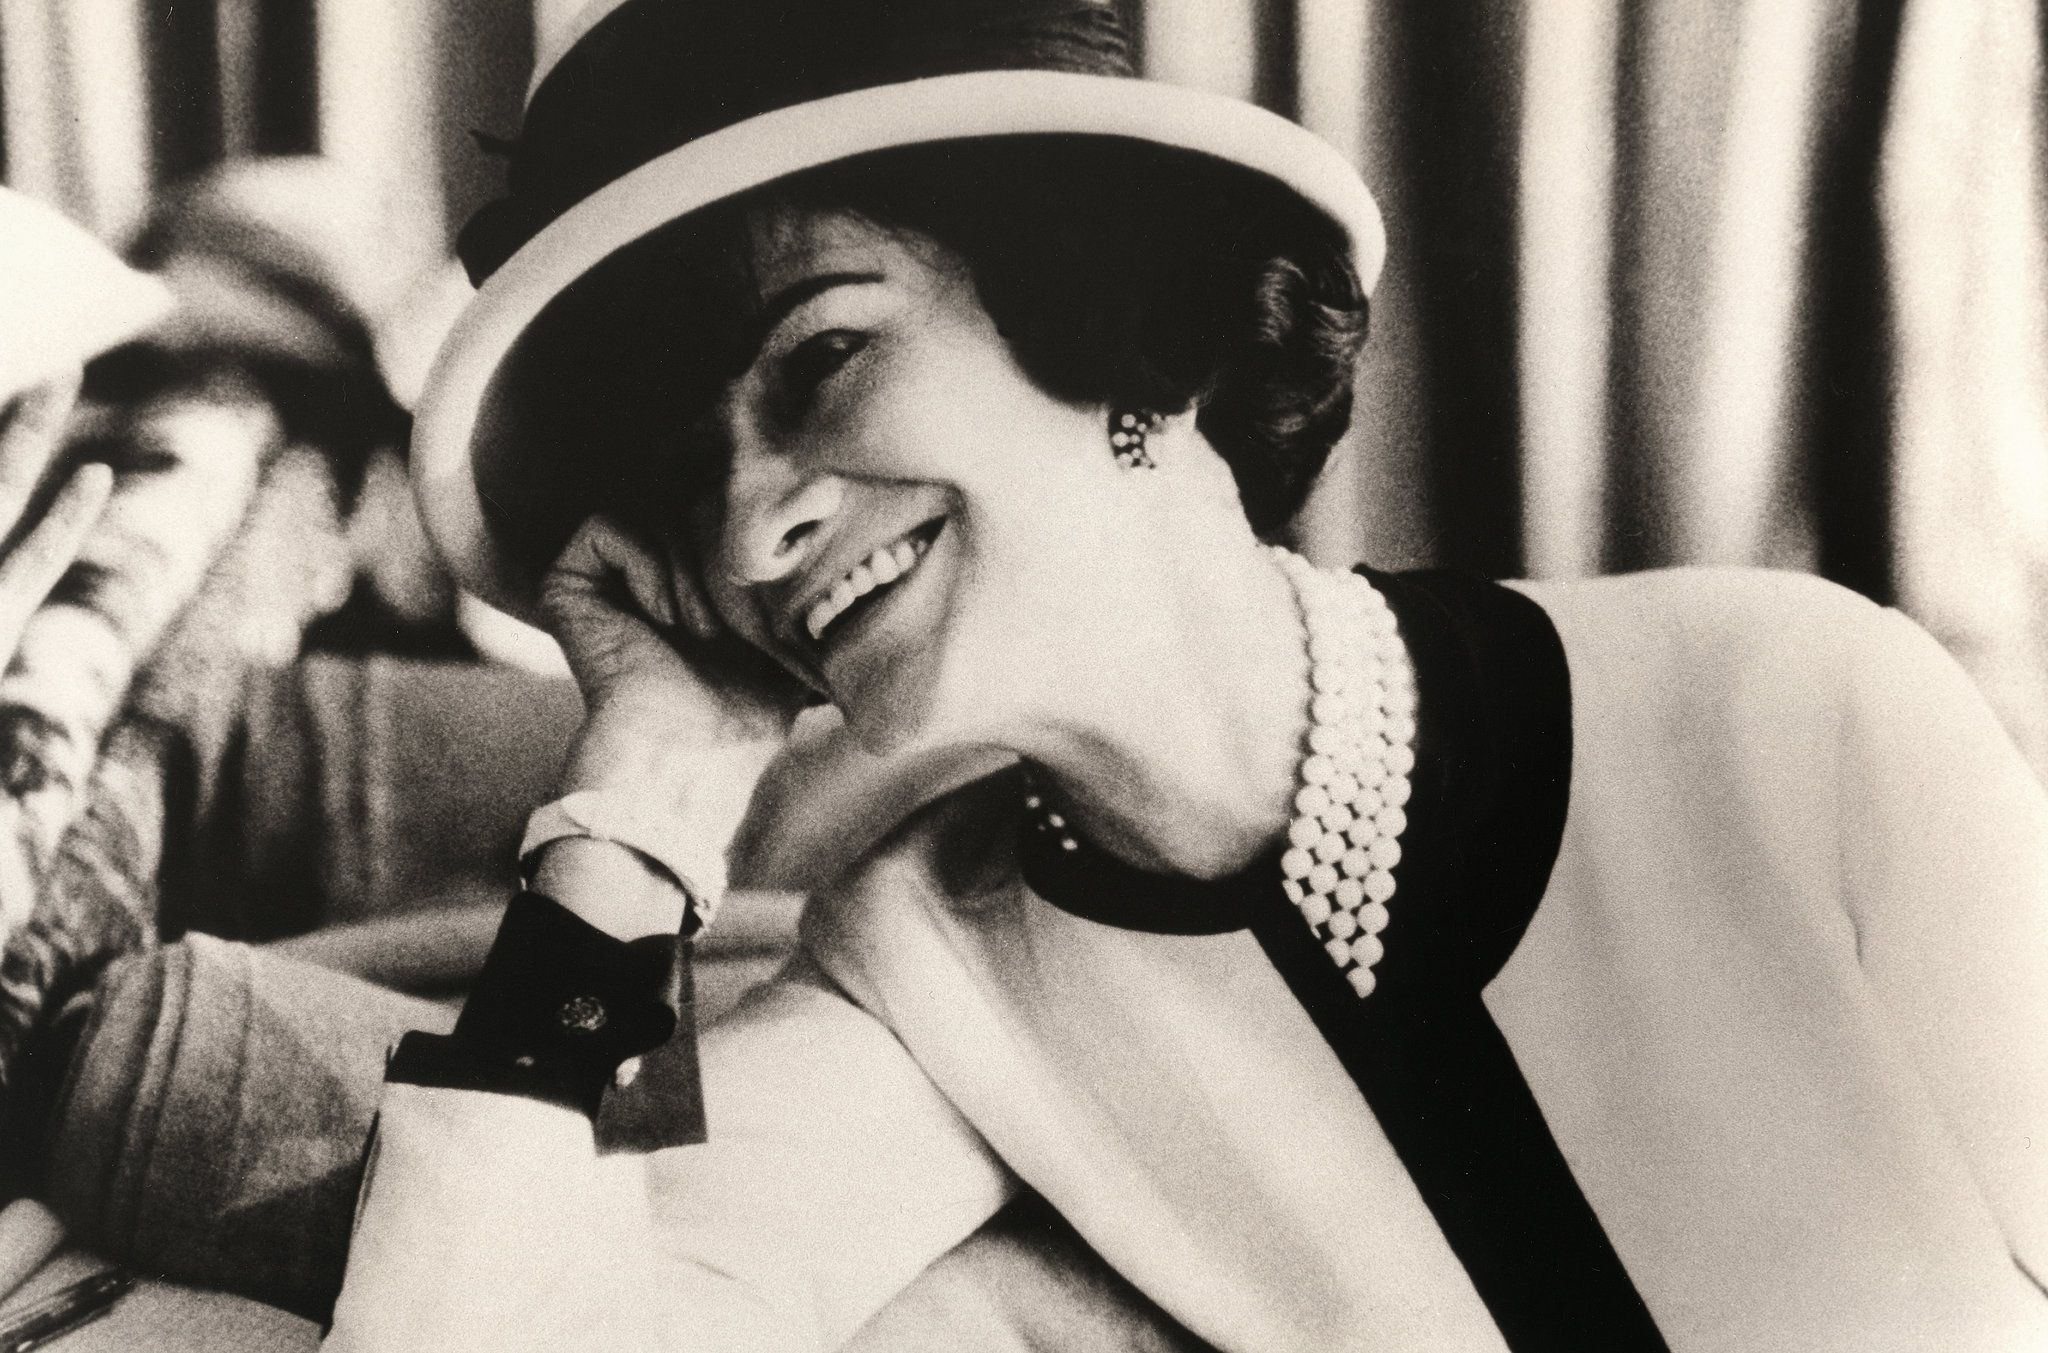 The legendary and incomparable Coco Chanel brought the world Chanel No. 5, one of the most iconic and bestselling fragrances ever made. Coco was known for her short hair, flawless makeup looks, and understated yet elegant fashion choices.